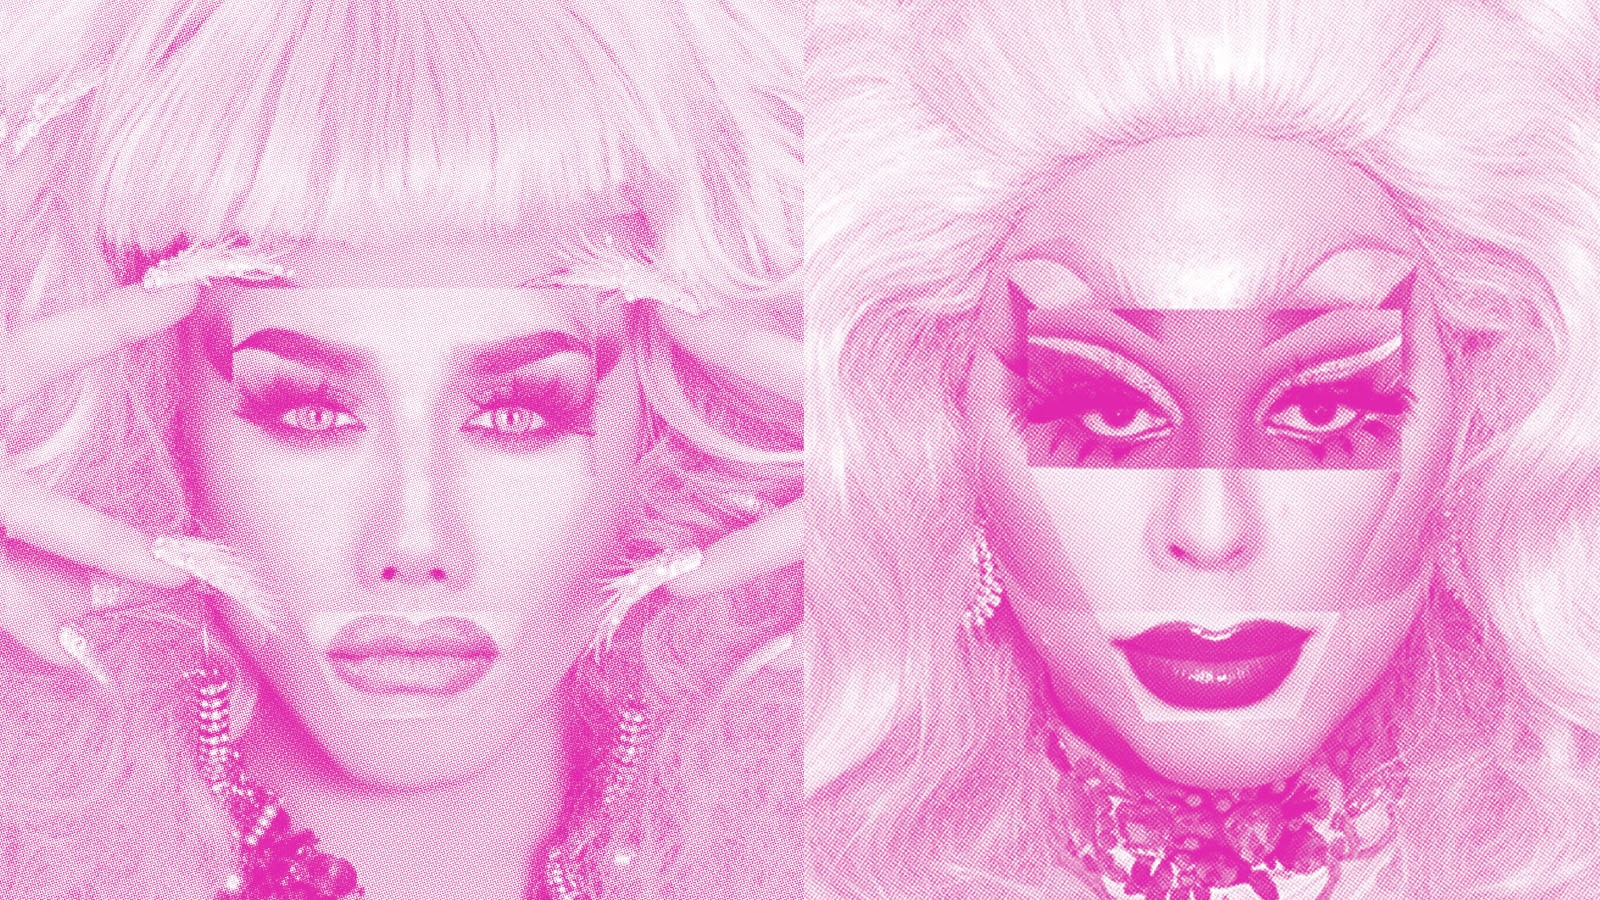 Supermodels of the World: A Drag Race Symposium